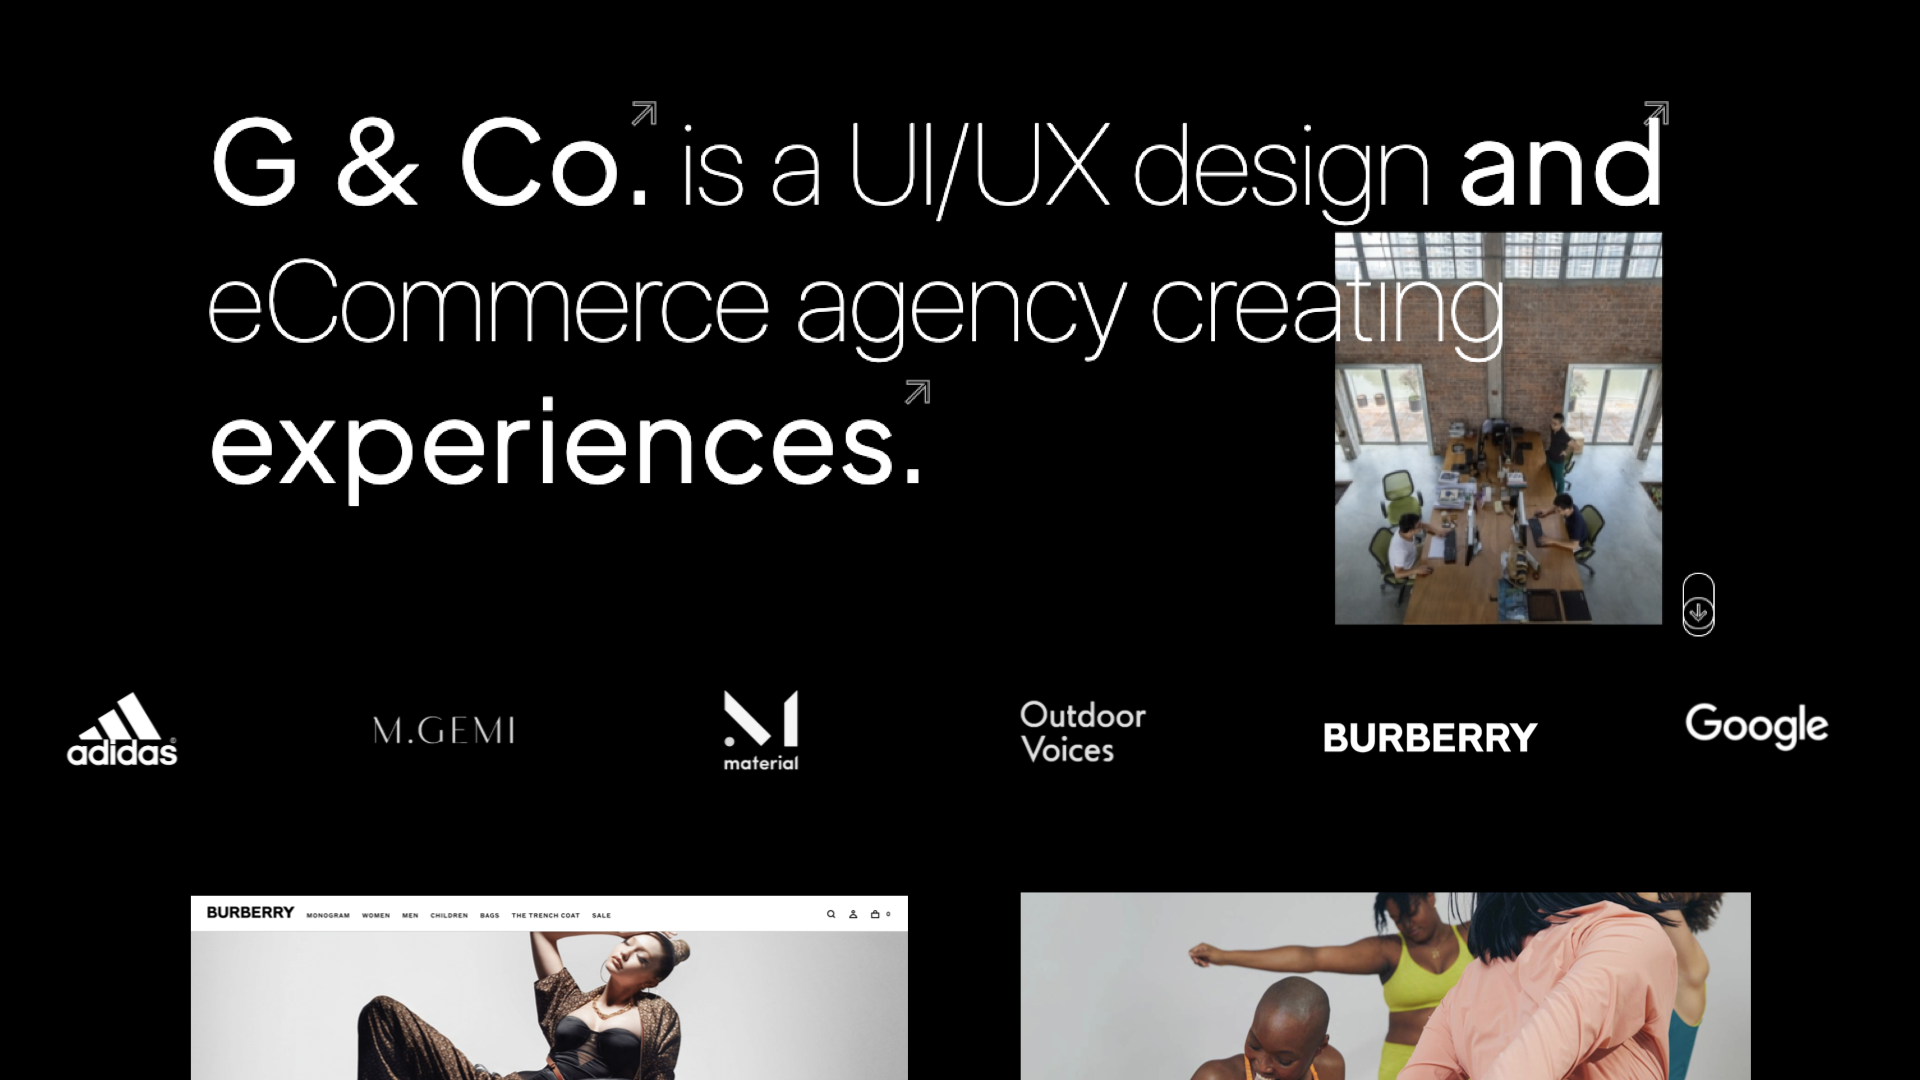 G & Co. is a DTC marketing agency and DTC eCommerce agency: G & Co. UI/UX design and eCommerce agency: Specializing in DTC & luxury brands